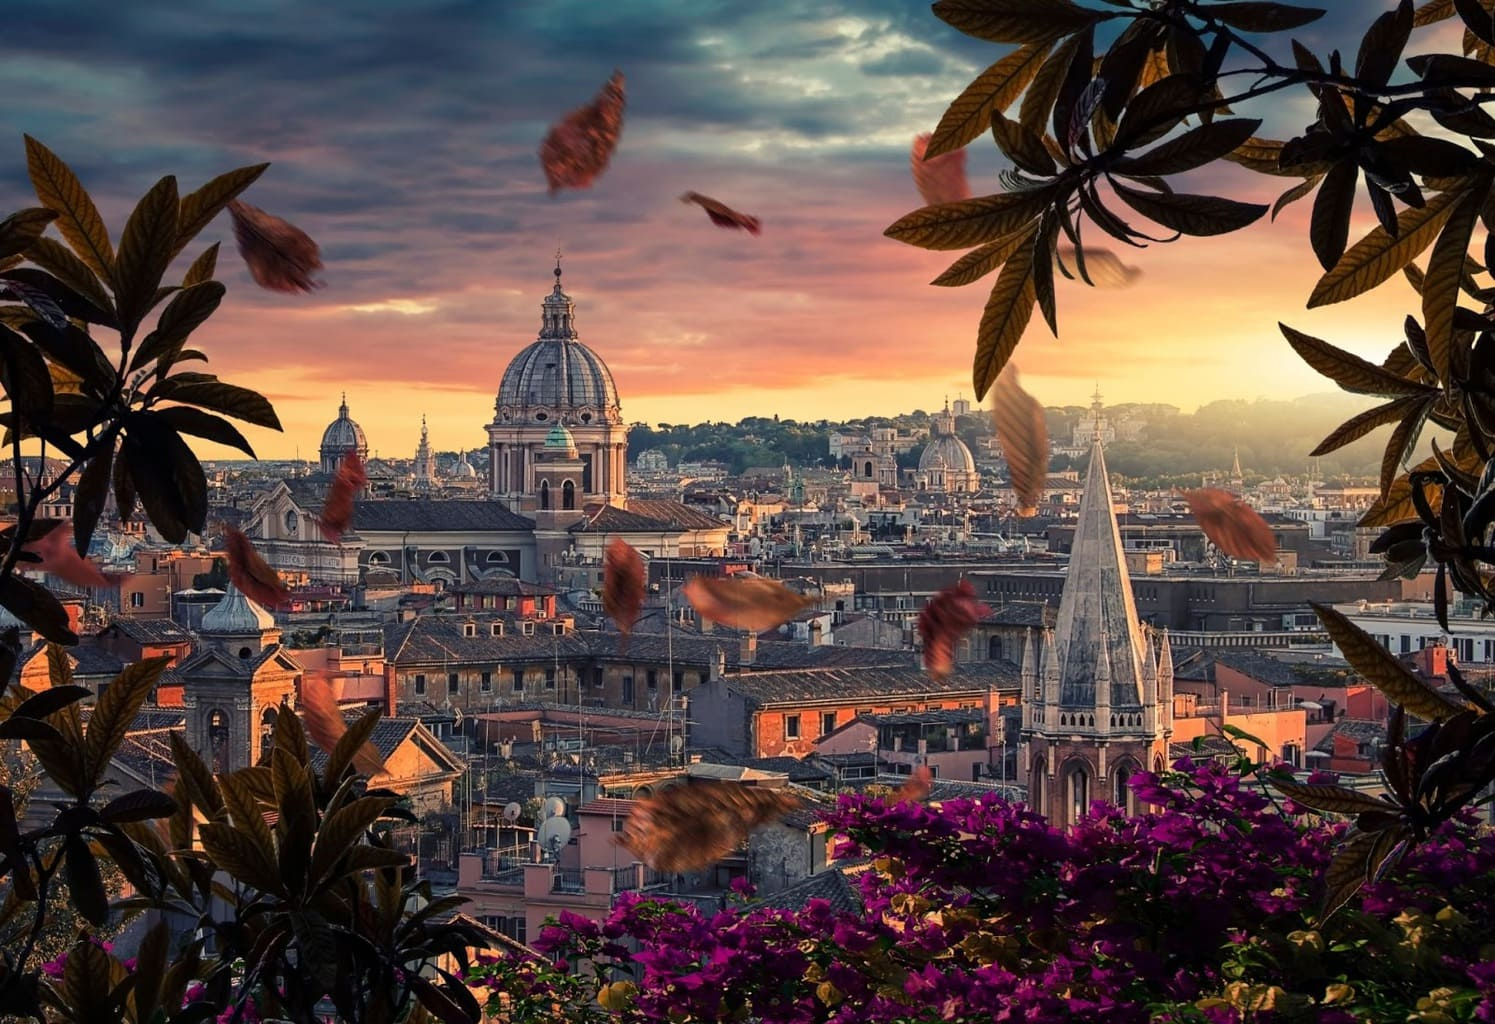 Rome, the capital of Italy